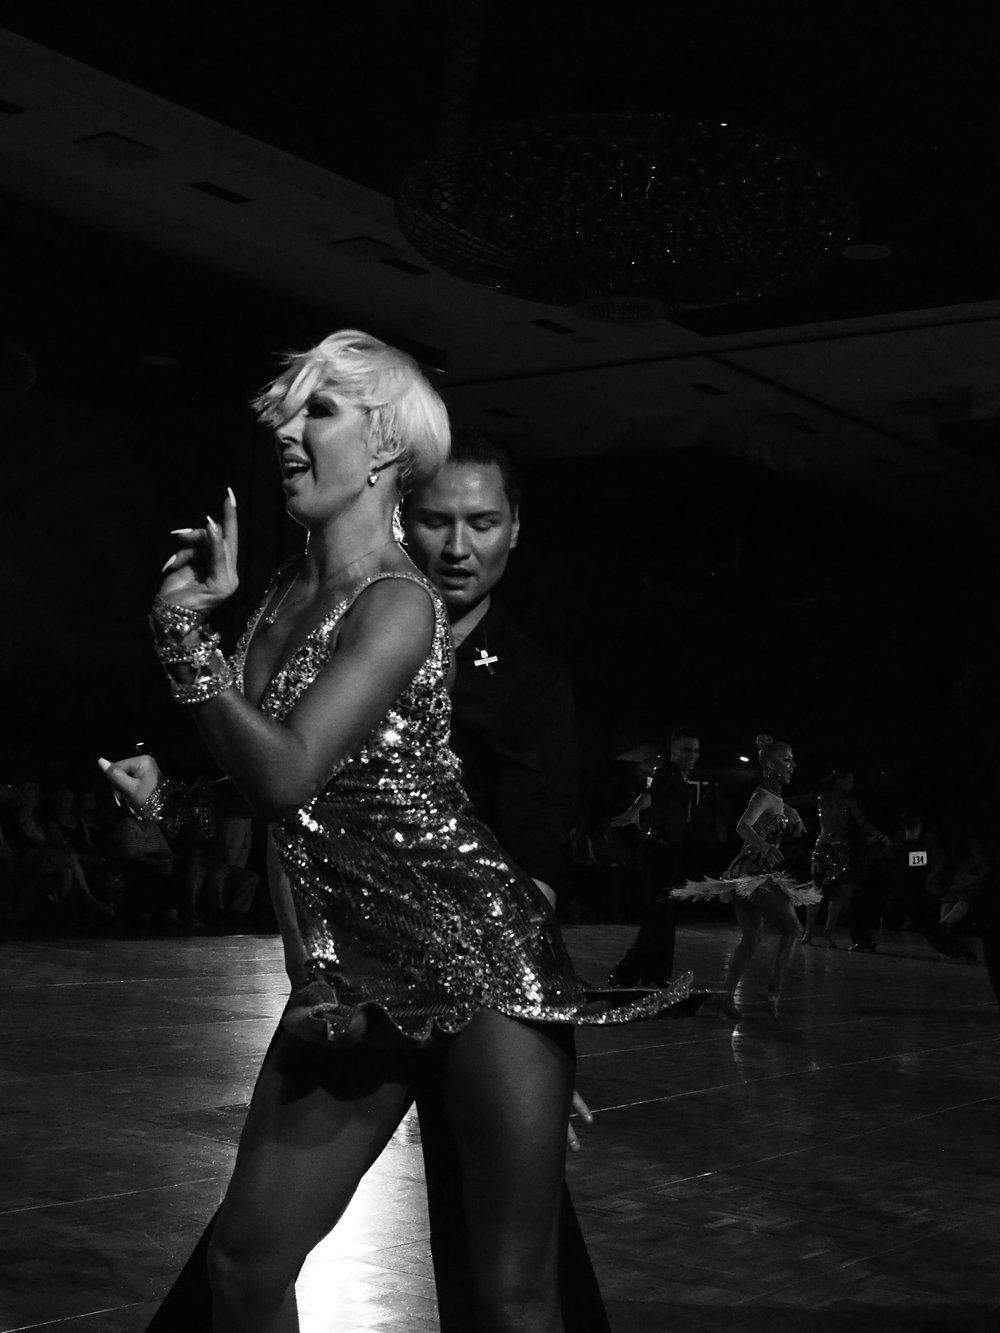 Ballroom competition. Minneapolis, MN. 2018.